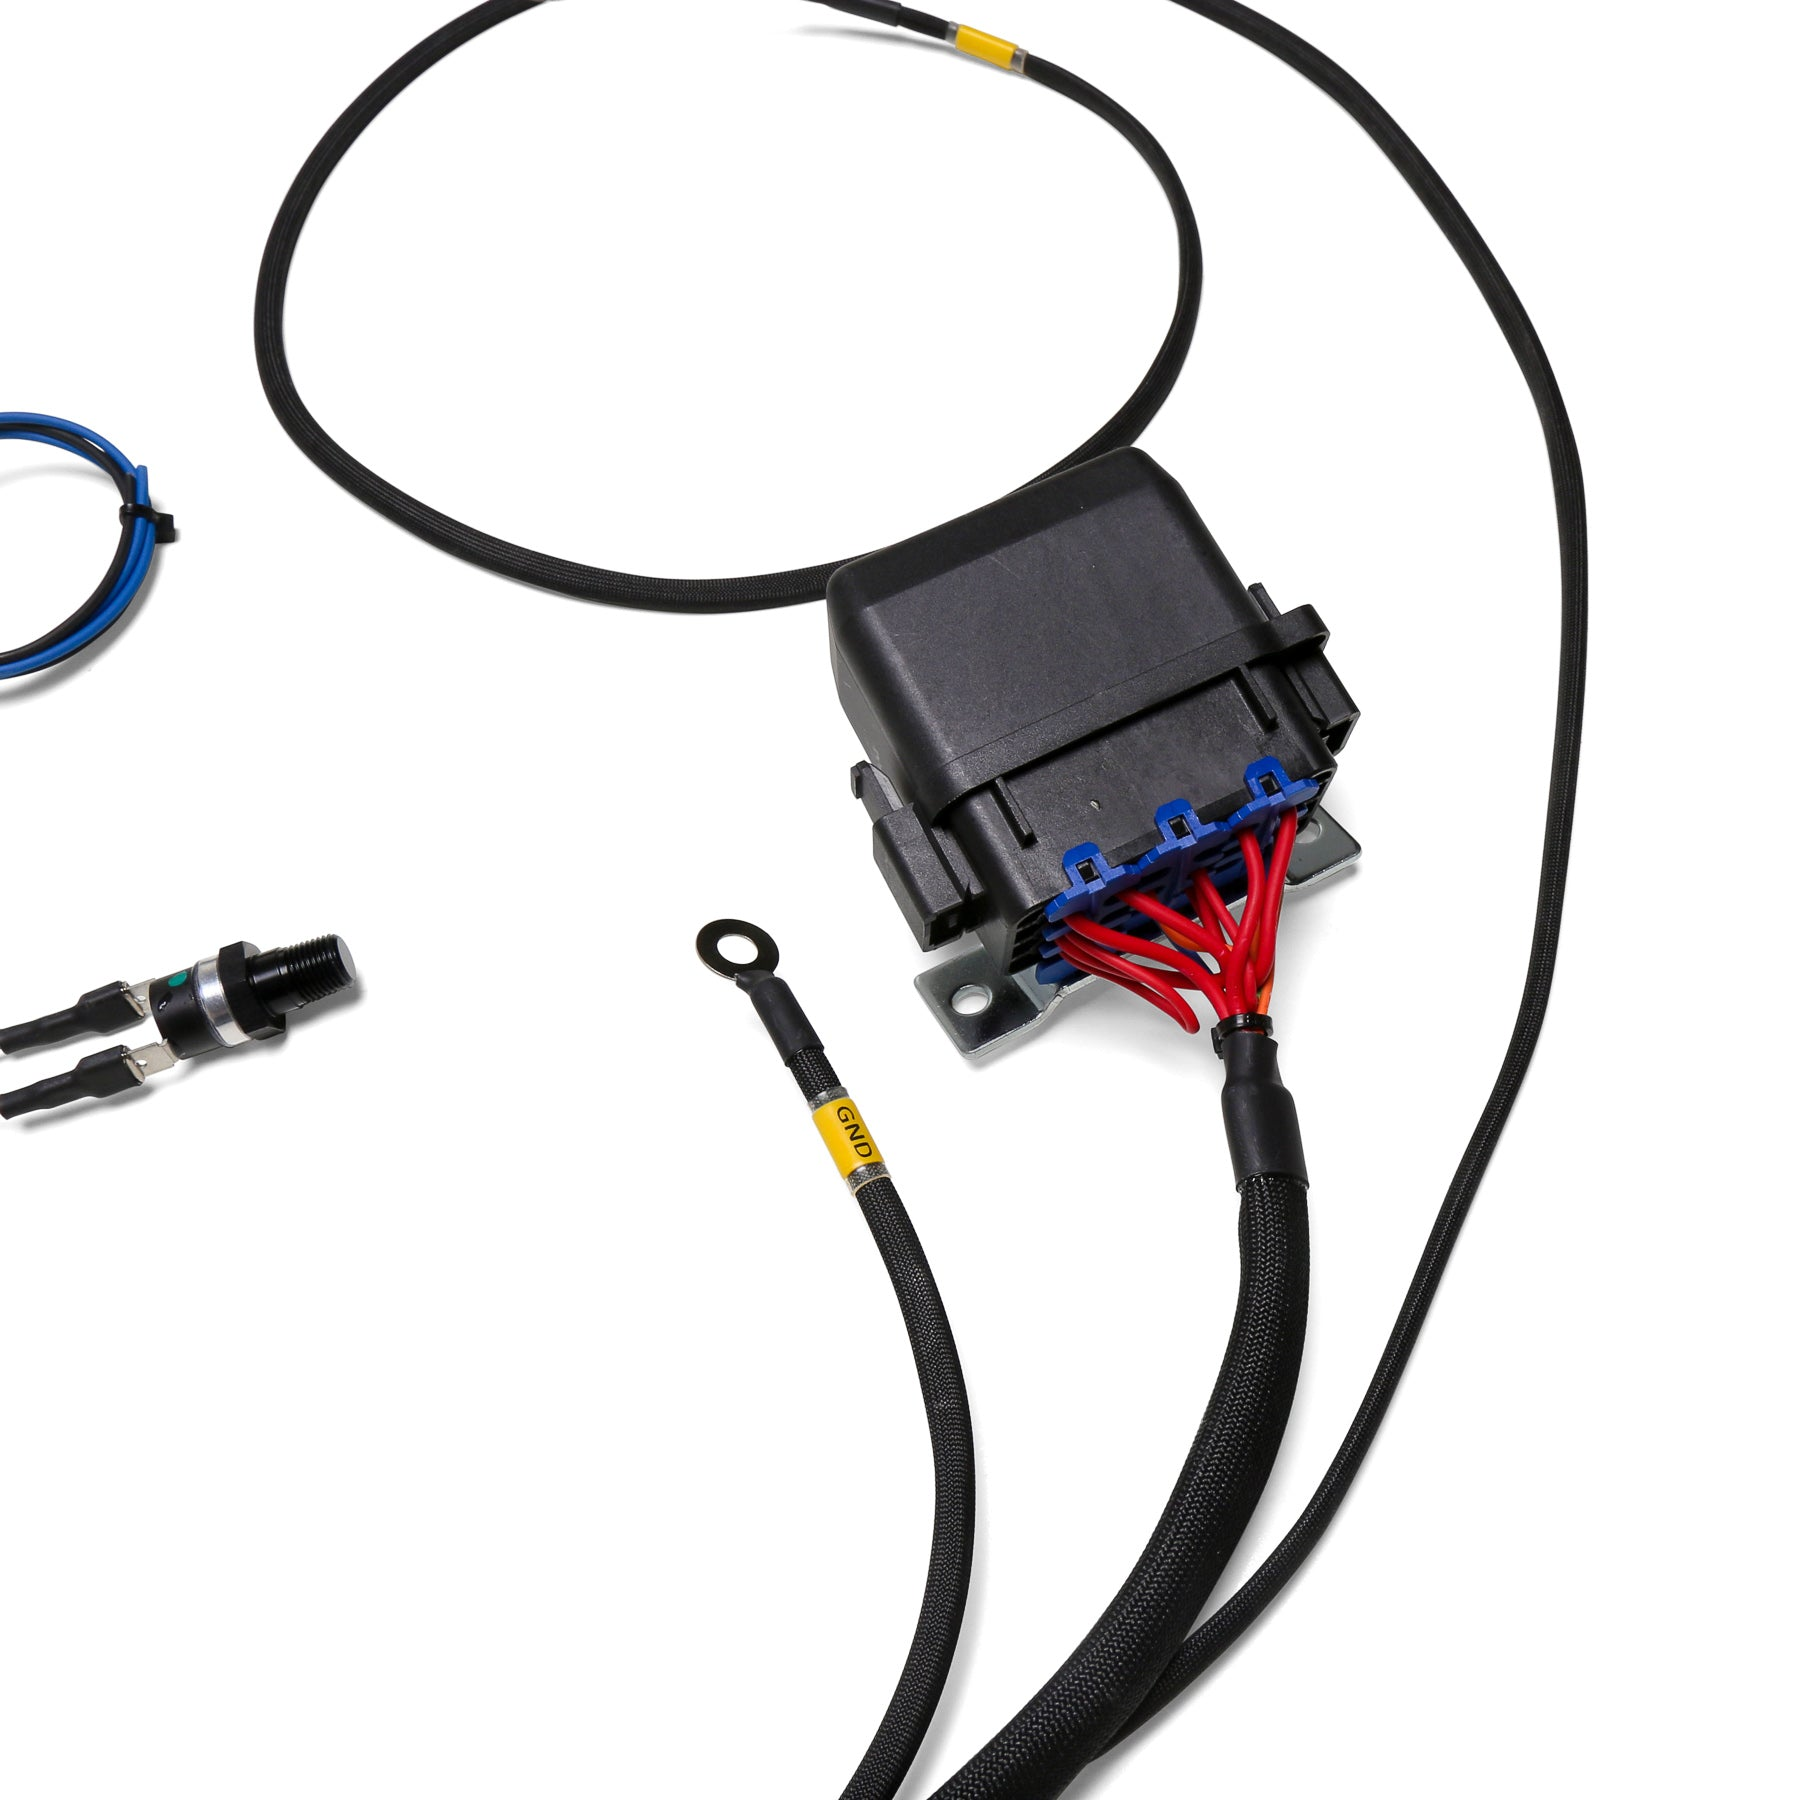 Mazda Miata Dual Fan Wiring Harness Free Download Electric Diagram Chase Bays Relay With 180 F Thermoswitch